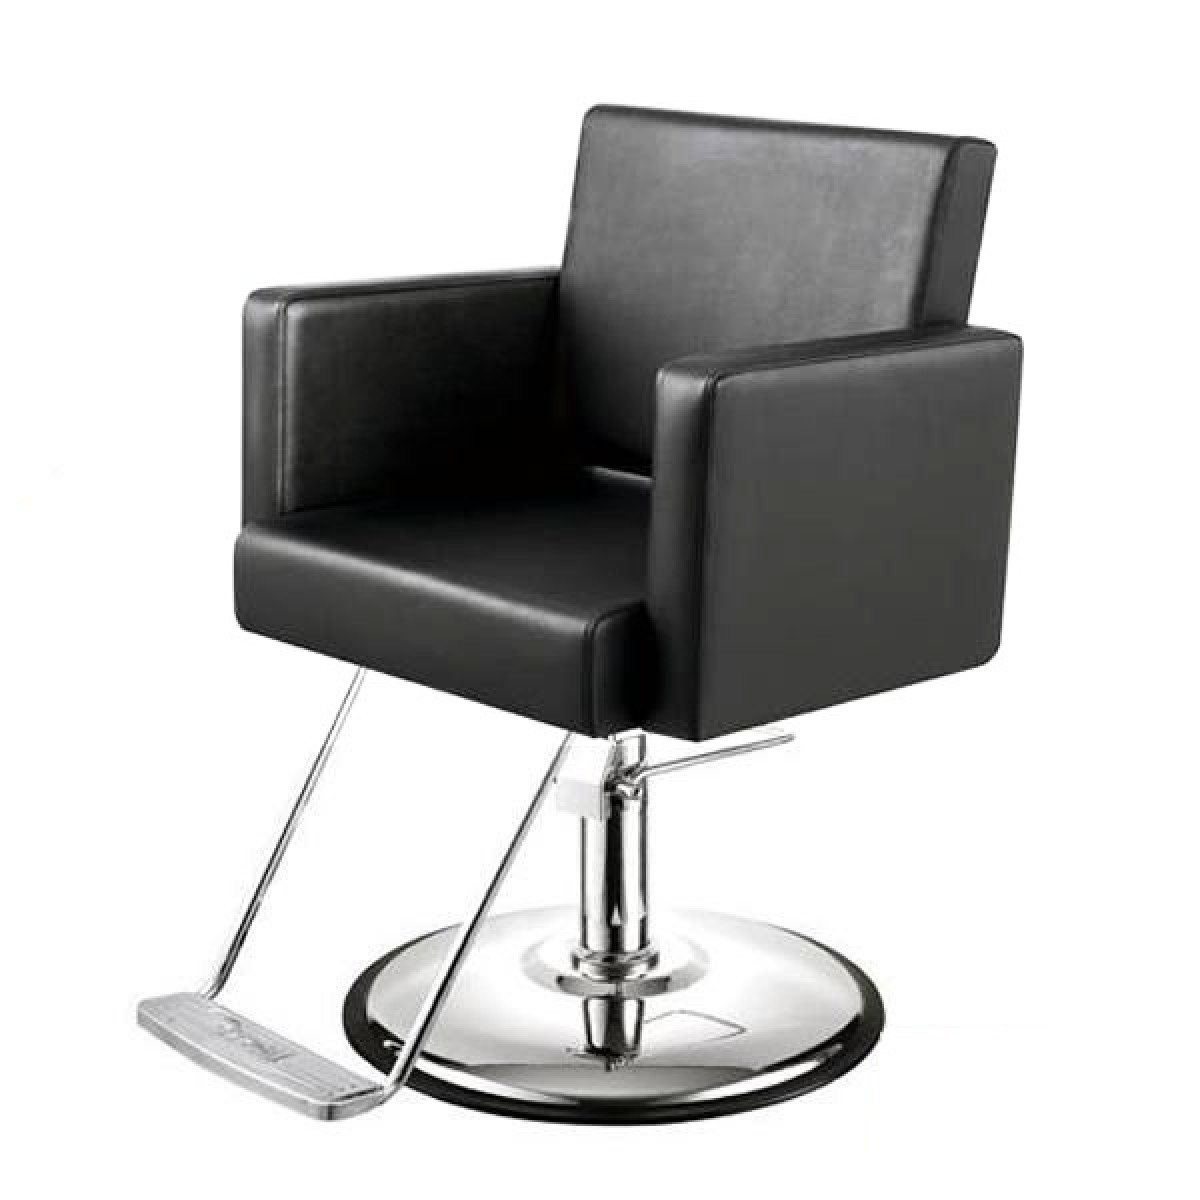 """CANON"" Salon Styling Chair, Hair Styling Chair, Hair Salon Chairs"